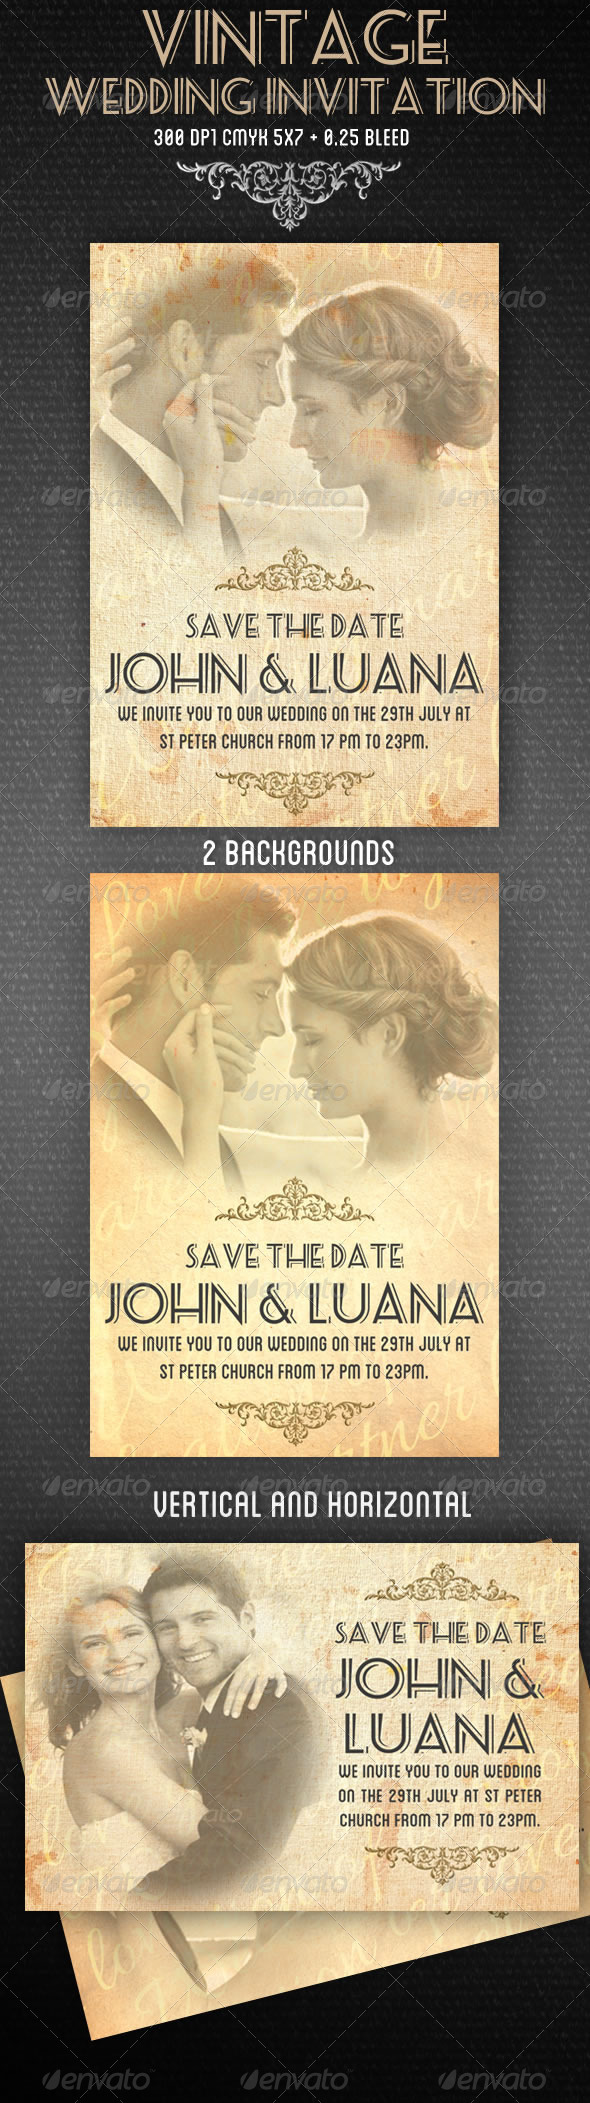 GraphicRiver Vintage Wedding Invitation 4424727